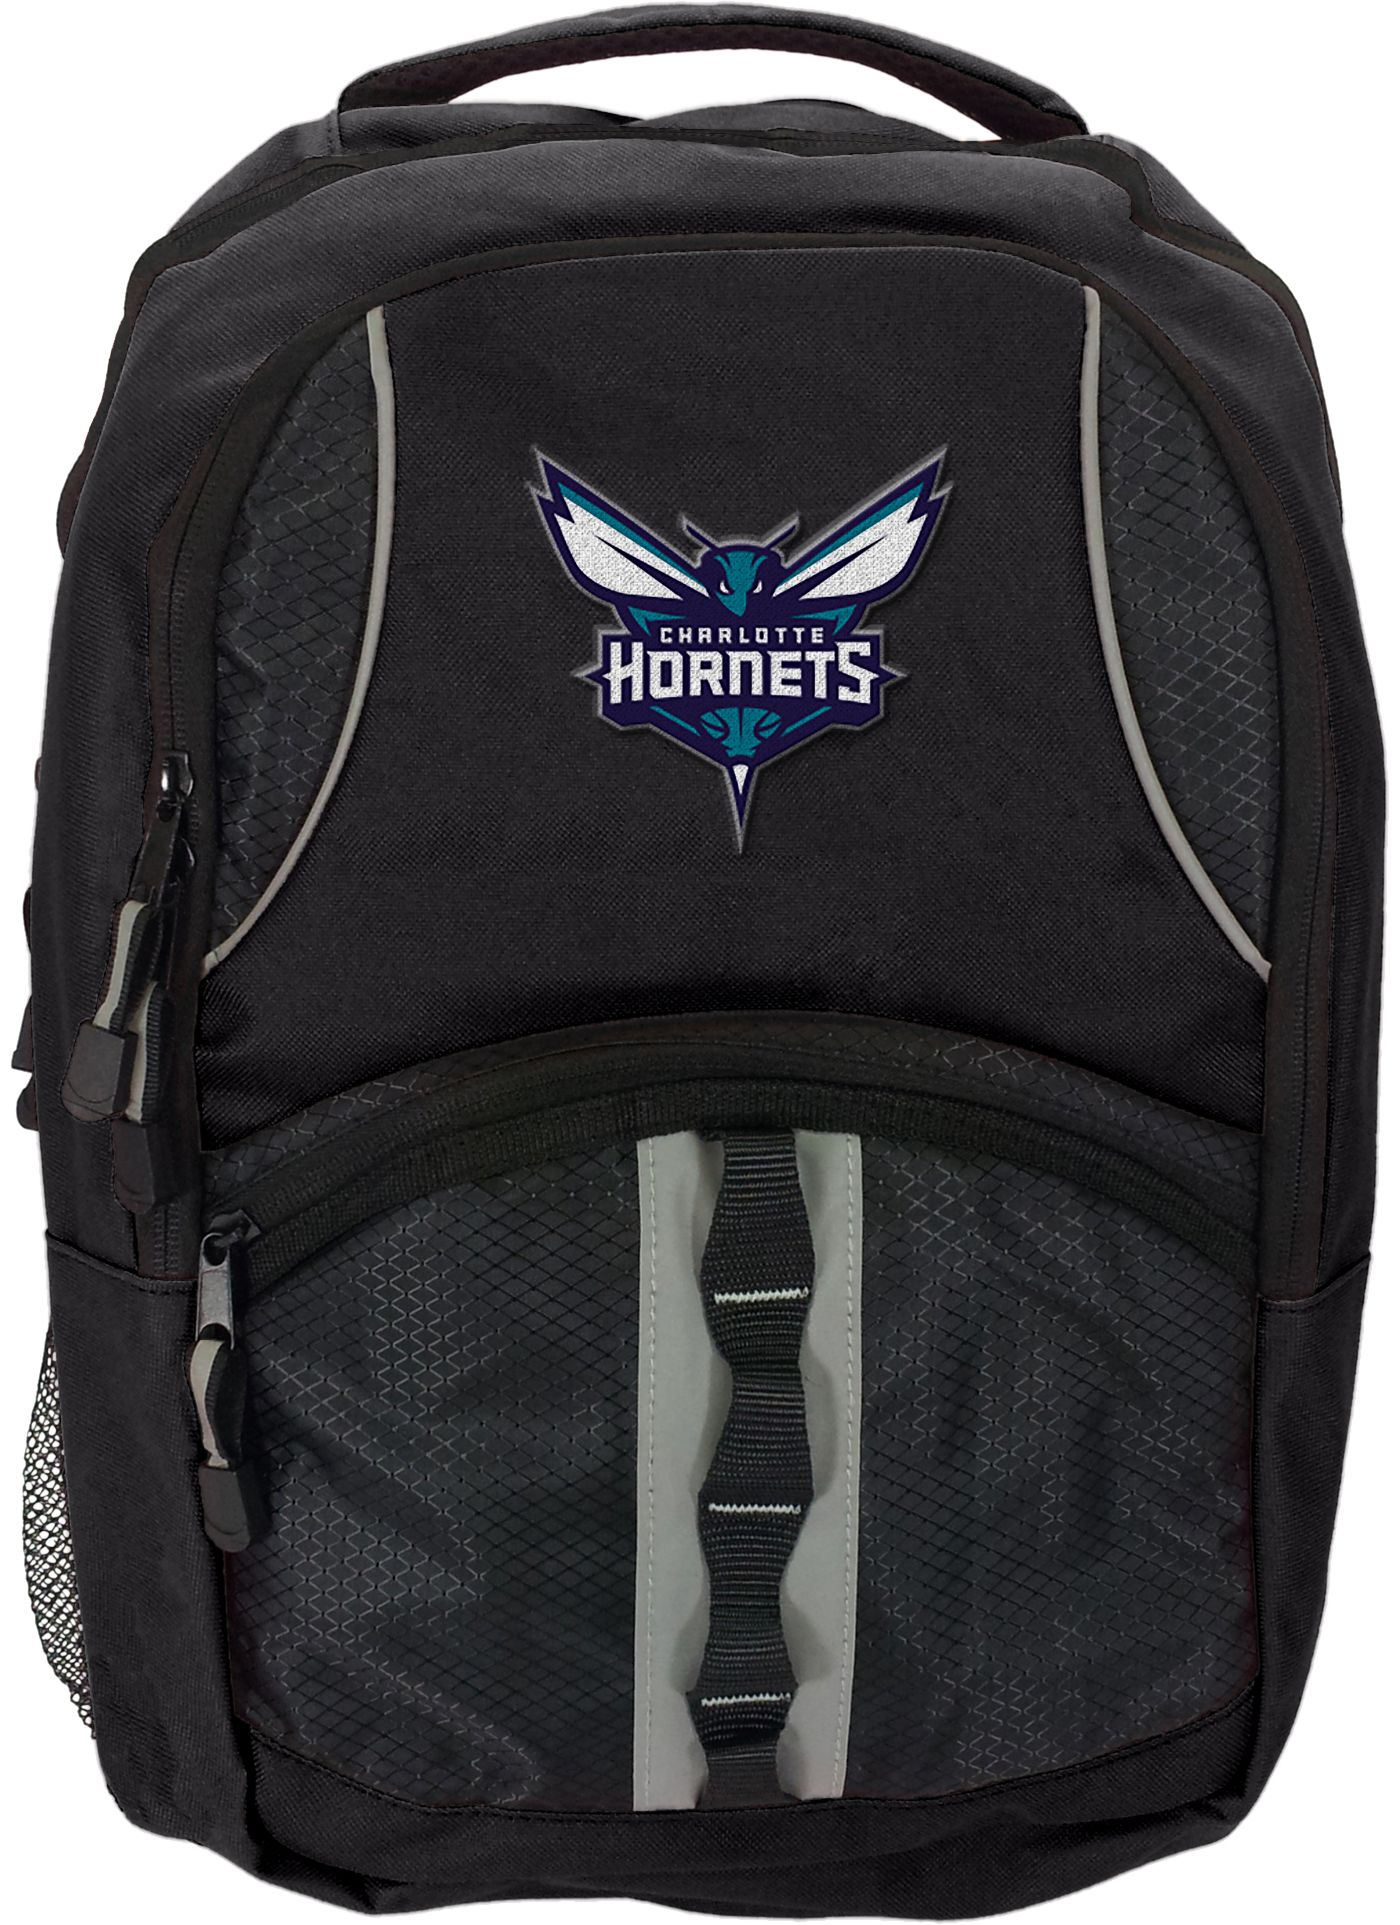 Northwest Charolotte Hornets Captain Backpack